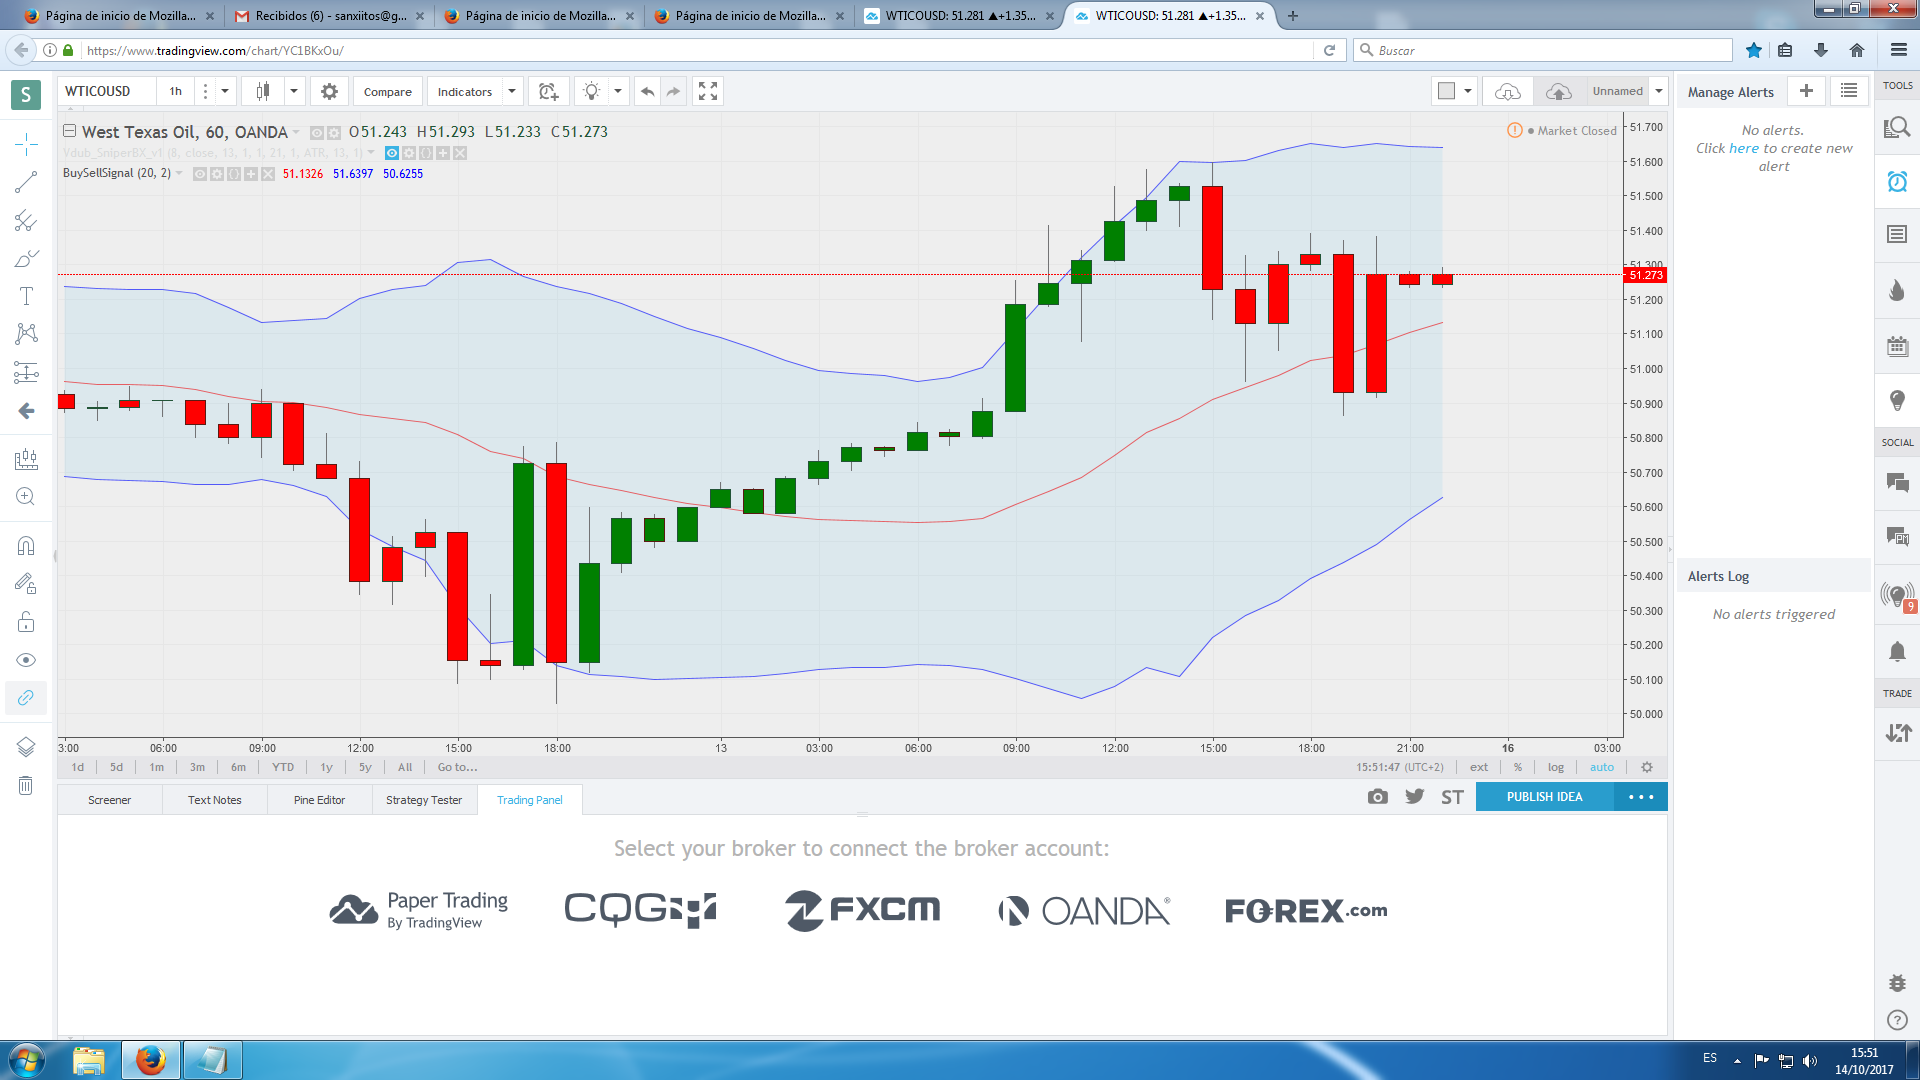 Tradingview Pine script - an order to develop the script at